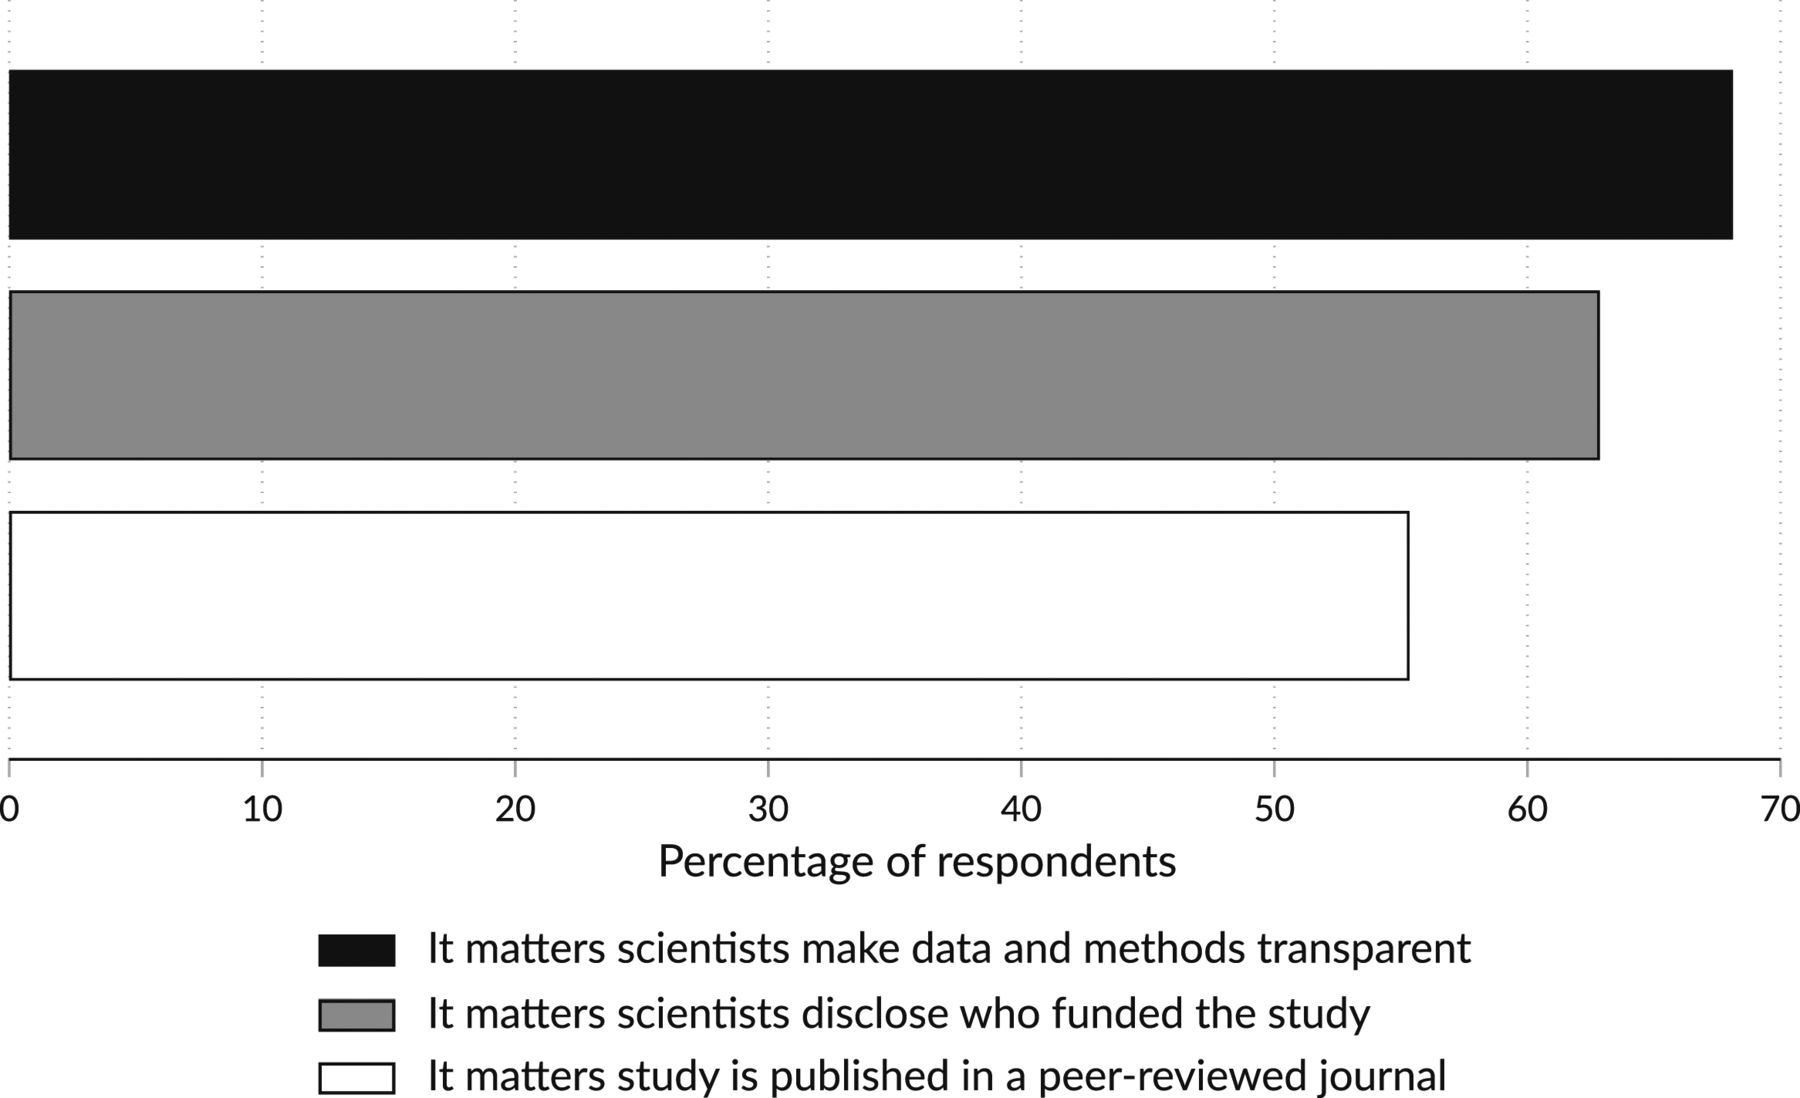 Figure 1. Signaling the trustworthiness of science. PNAS article on trust in science.